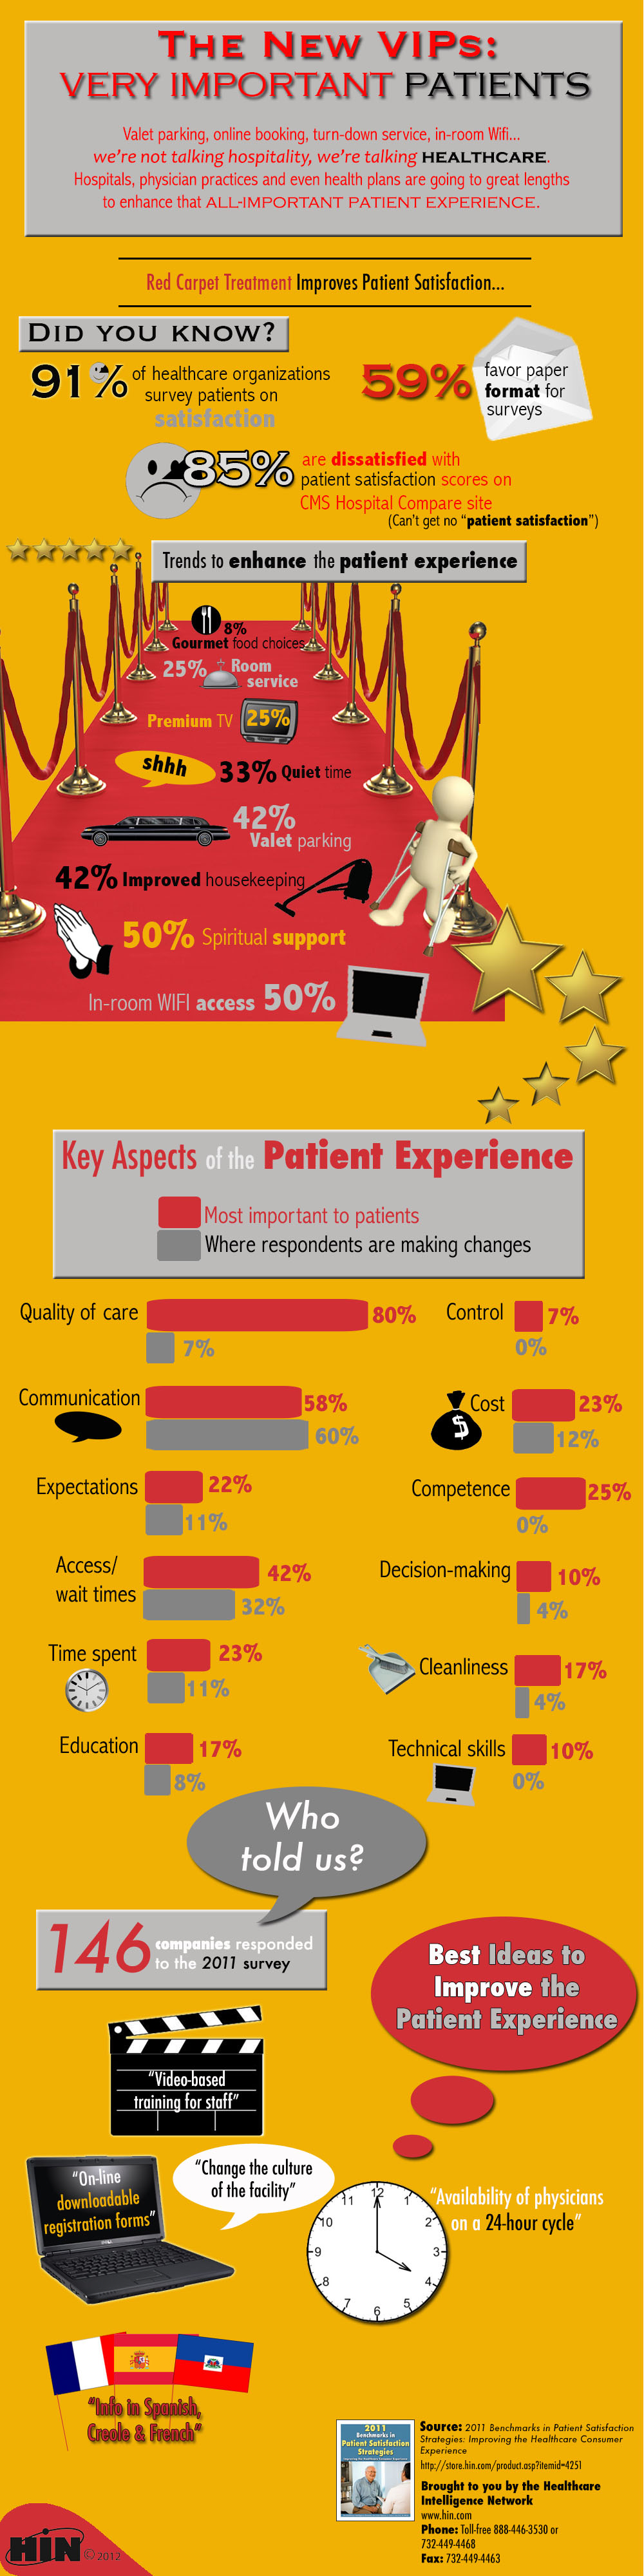 This new infographic from the Healthcare Intelligence Network highlights key trends in the healthcare industry to impress V.I.P.s — Very Important Patients — with its service and care delivery.